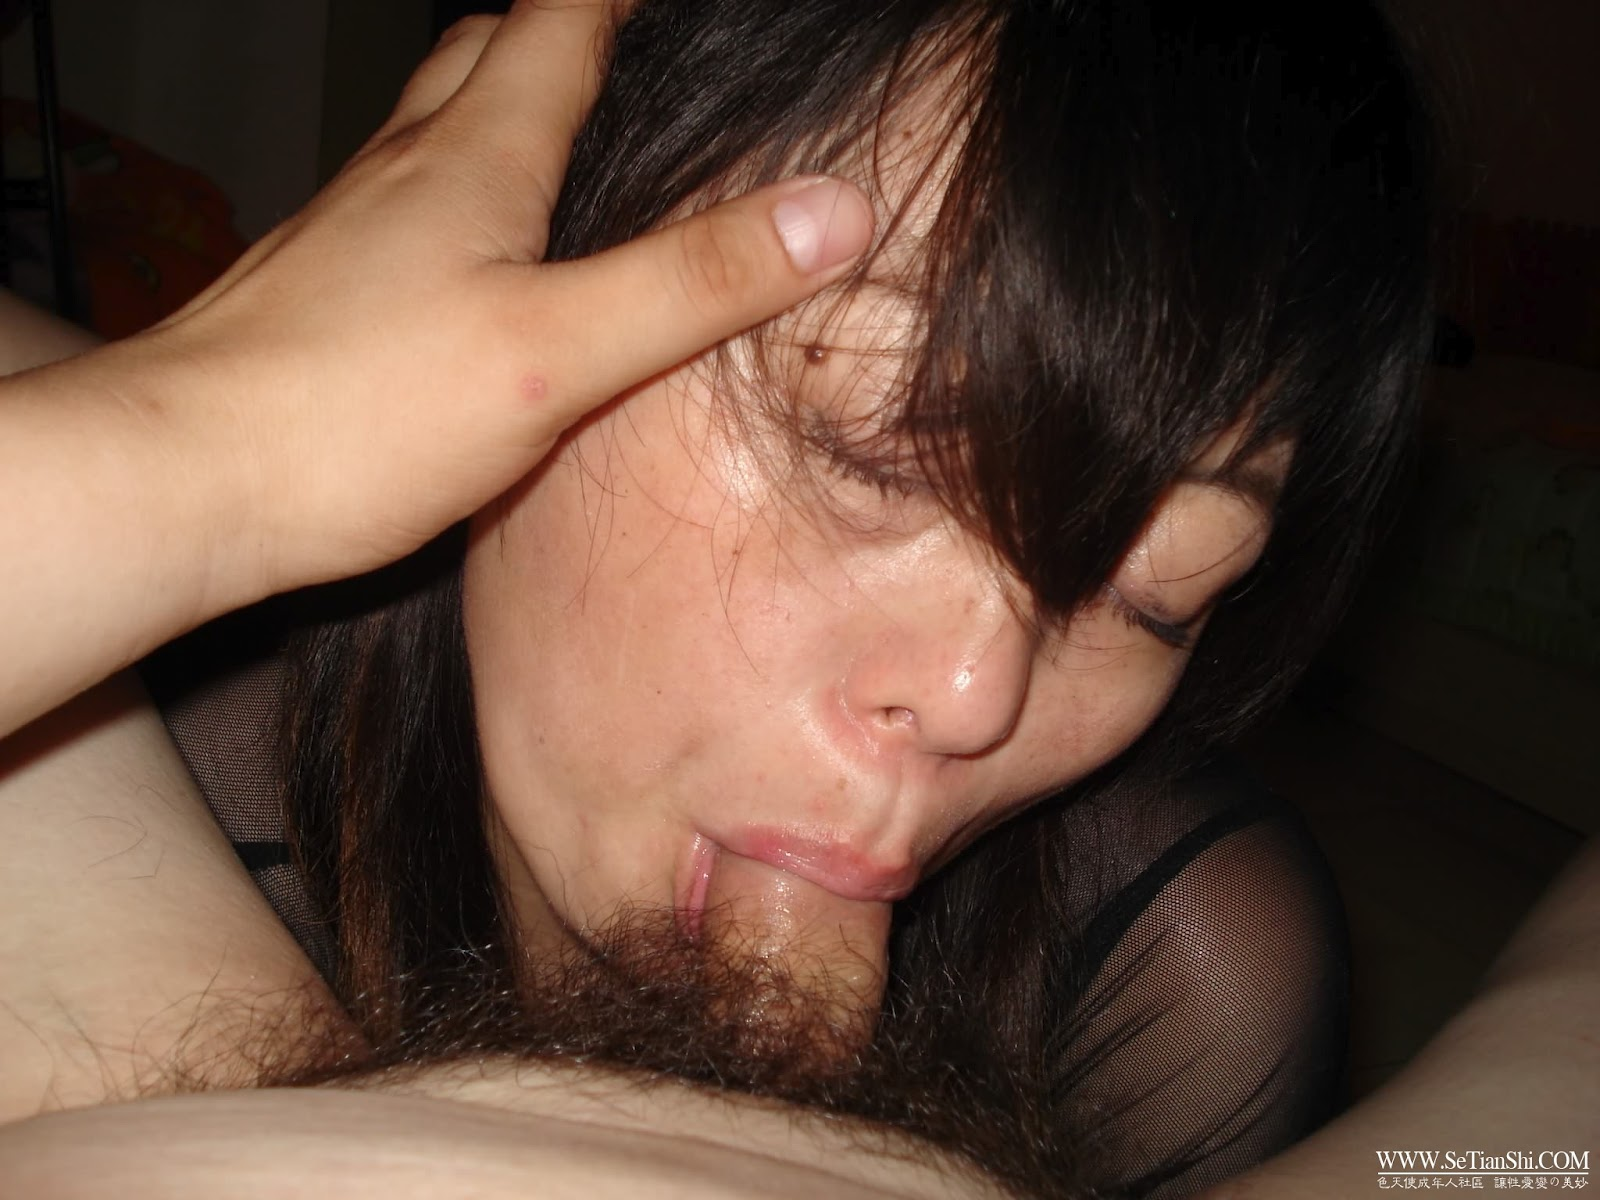 Chinese middle aged wife's show her juicy pussy and gets pleasured with vibrator Vaginal Toys stripping Shaved Pussy Pussy Masturbation Dildo Amateur